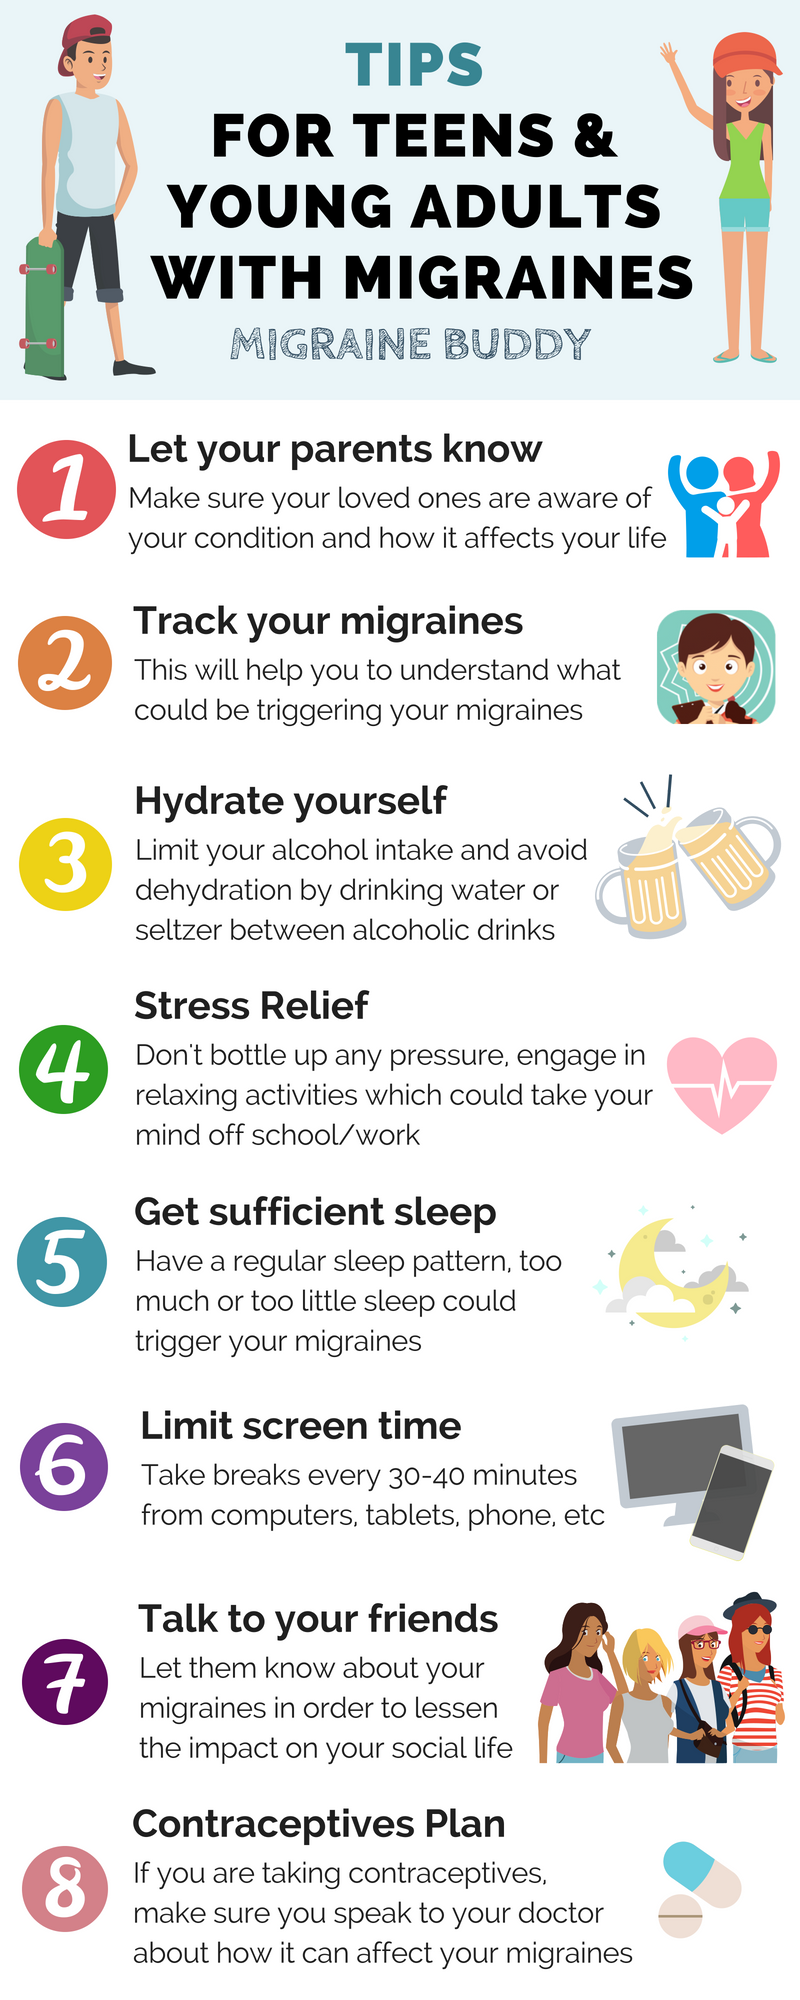 Tips for Teens and Young Adults with Migraines.png